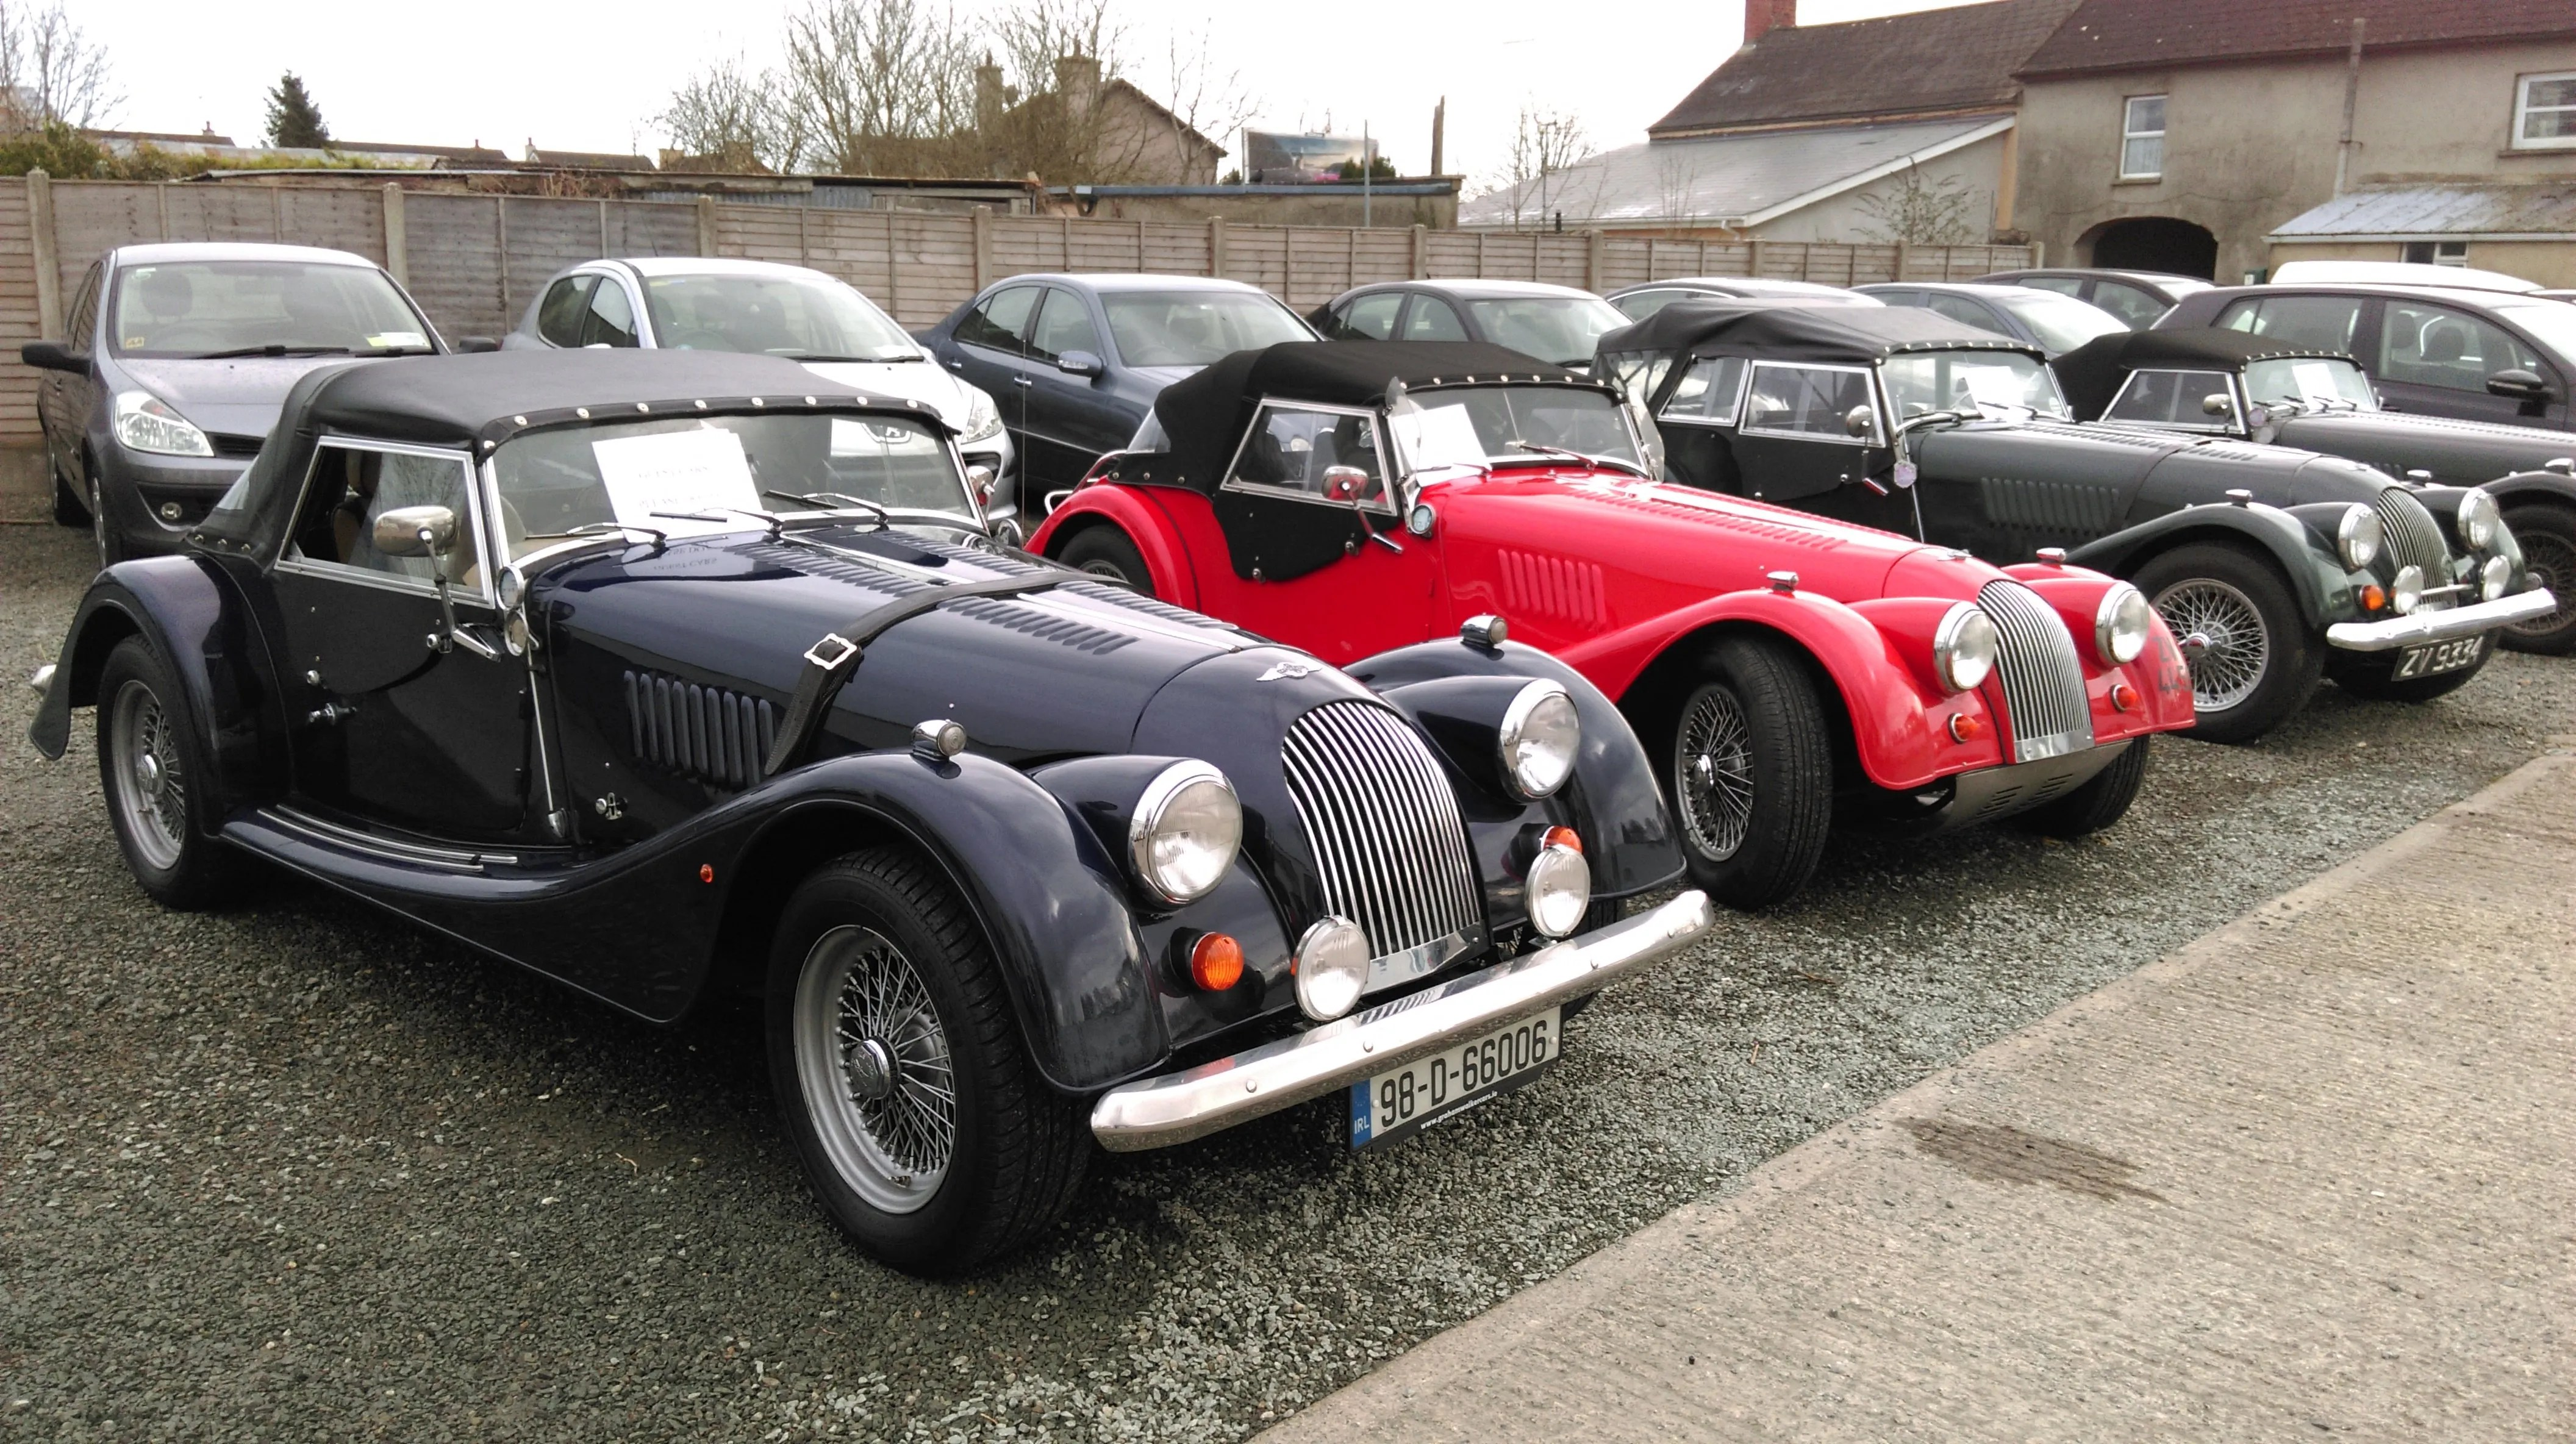 Morgan Cars Ireland